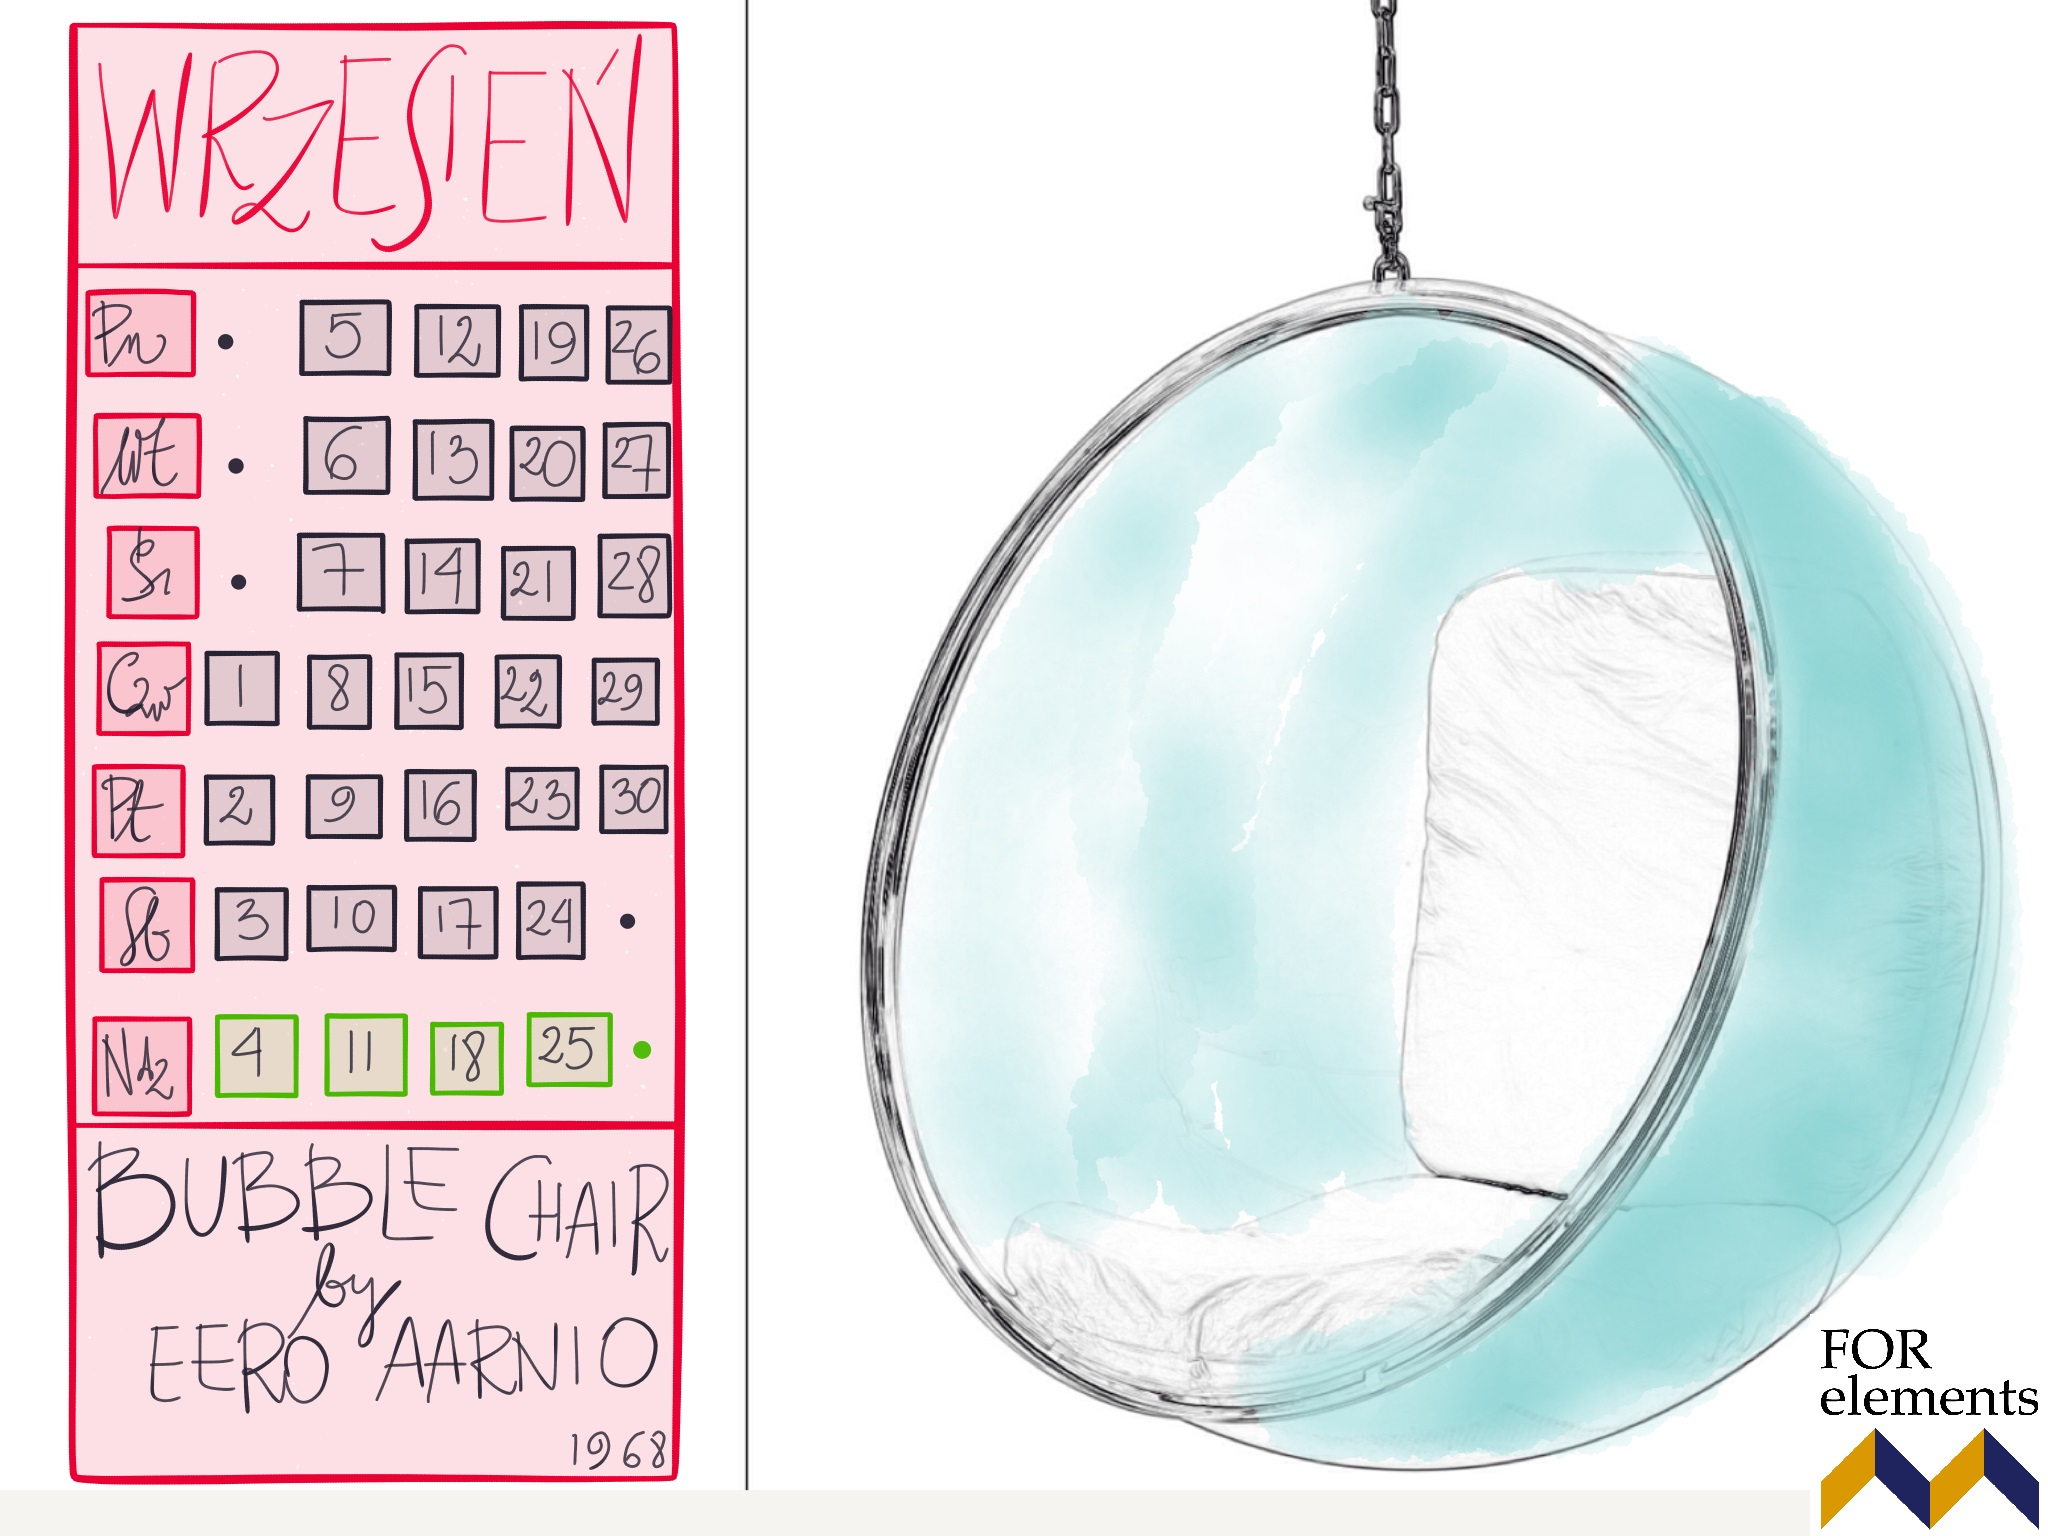 9 bubble_chair_eero_aarnio_adelta_calendar_2016_design_icons_furniture_interior_ideas_home_decorationg_forelements_blog